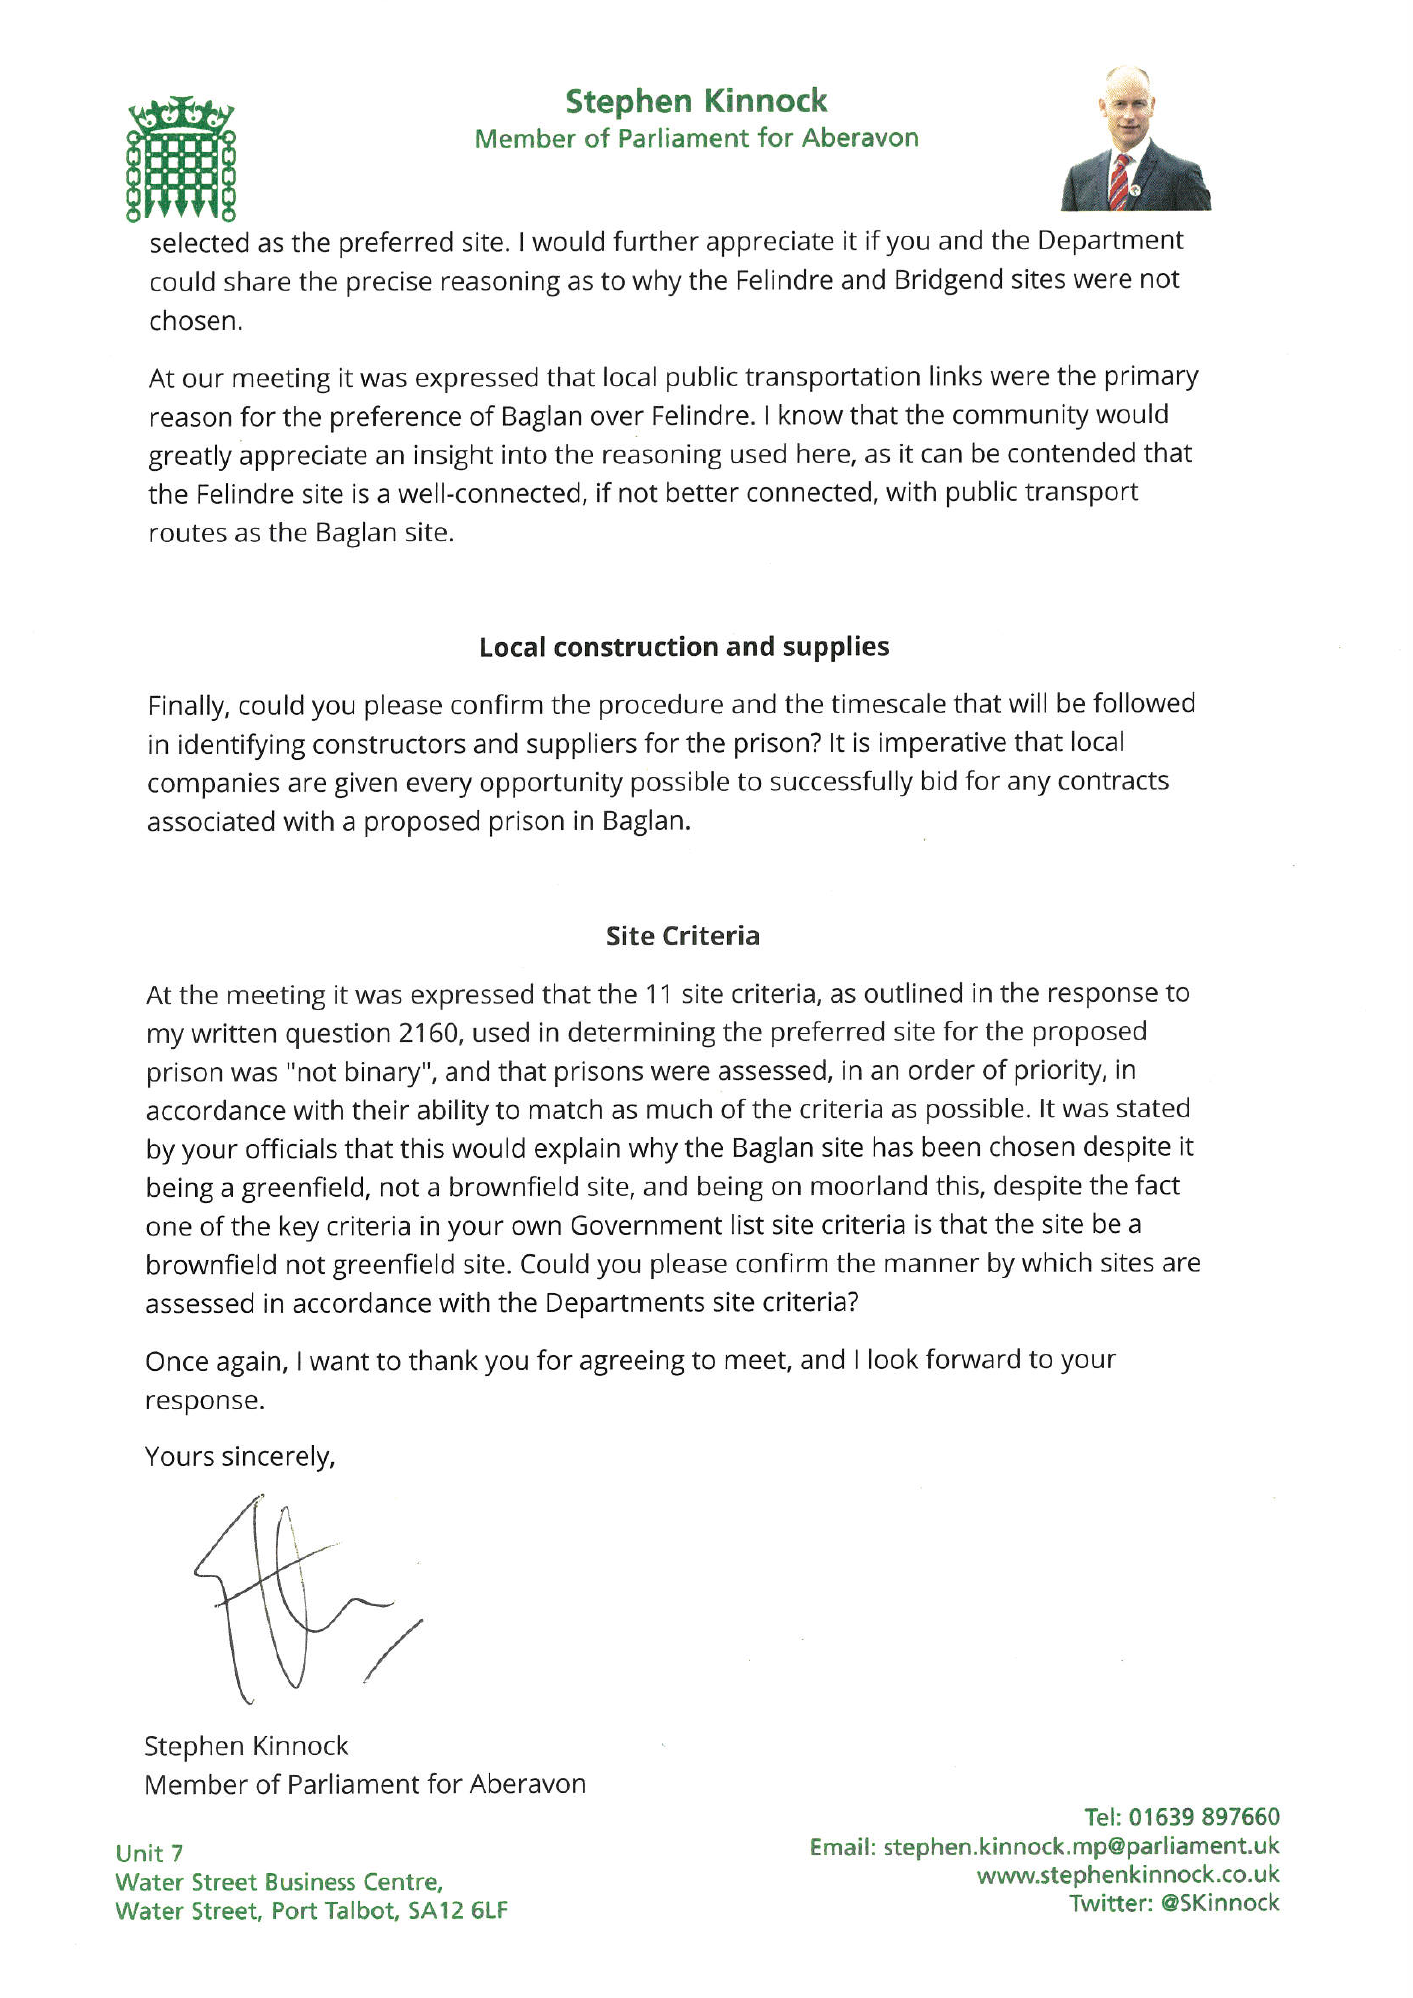 Letter_to_Sam_Gyimah_21072017_002.png